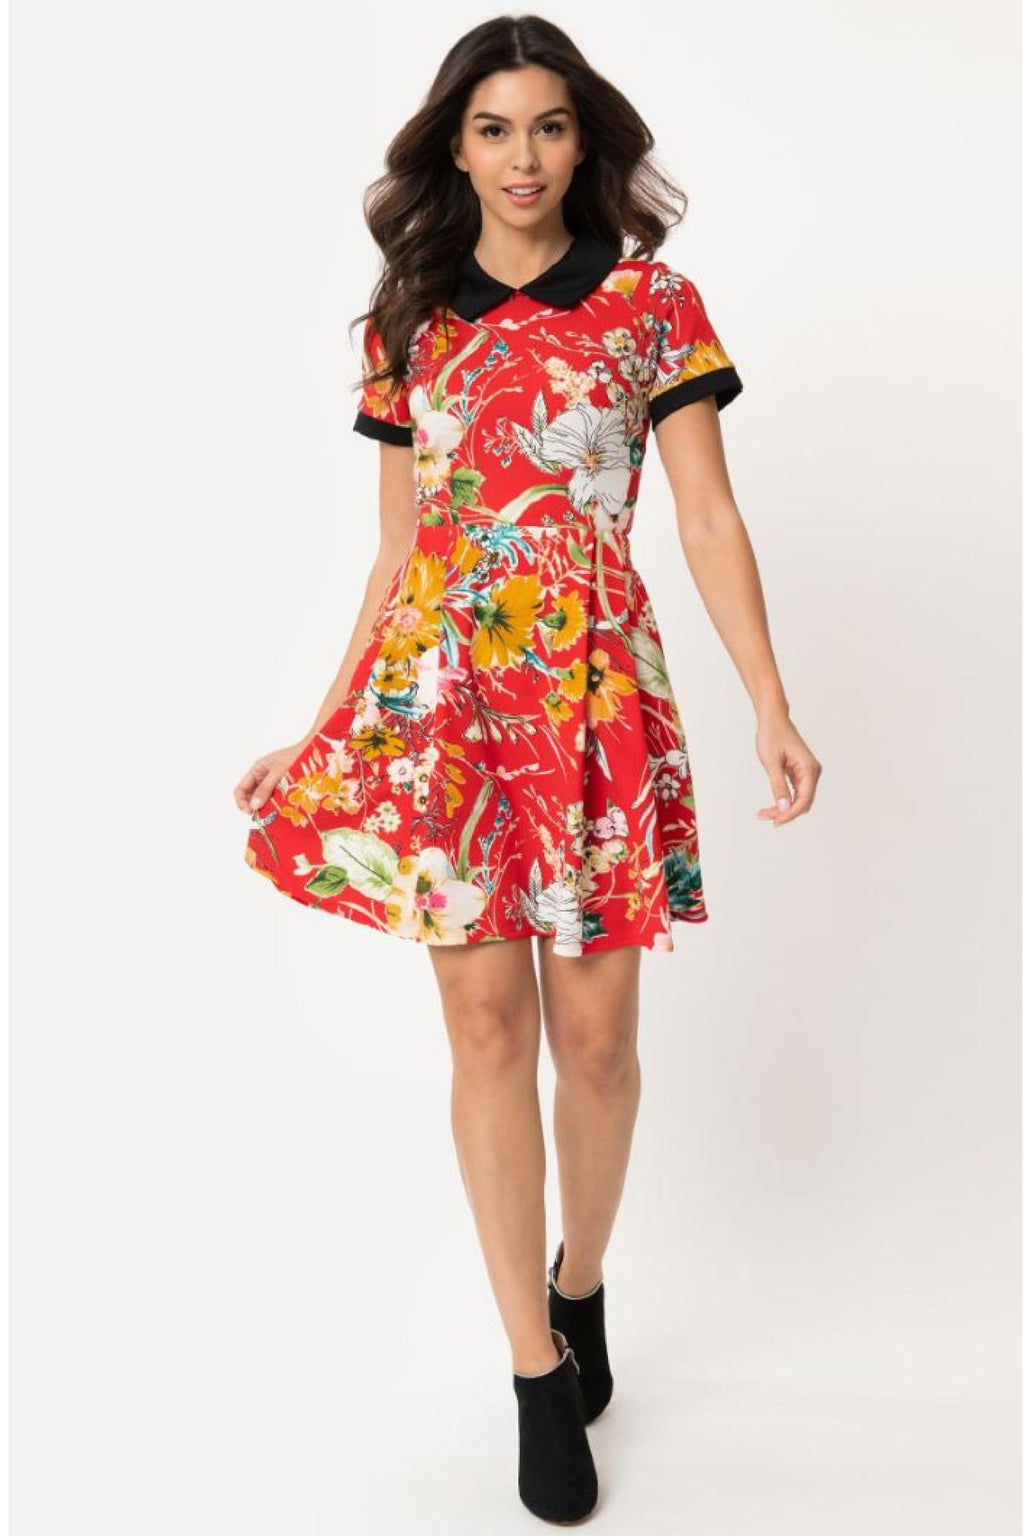 877b975529 Red Floral Babe Revolution Fit & Flare Dress by Smak Parlour